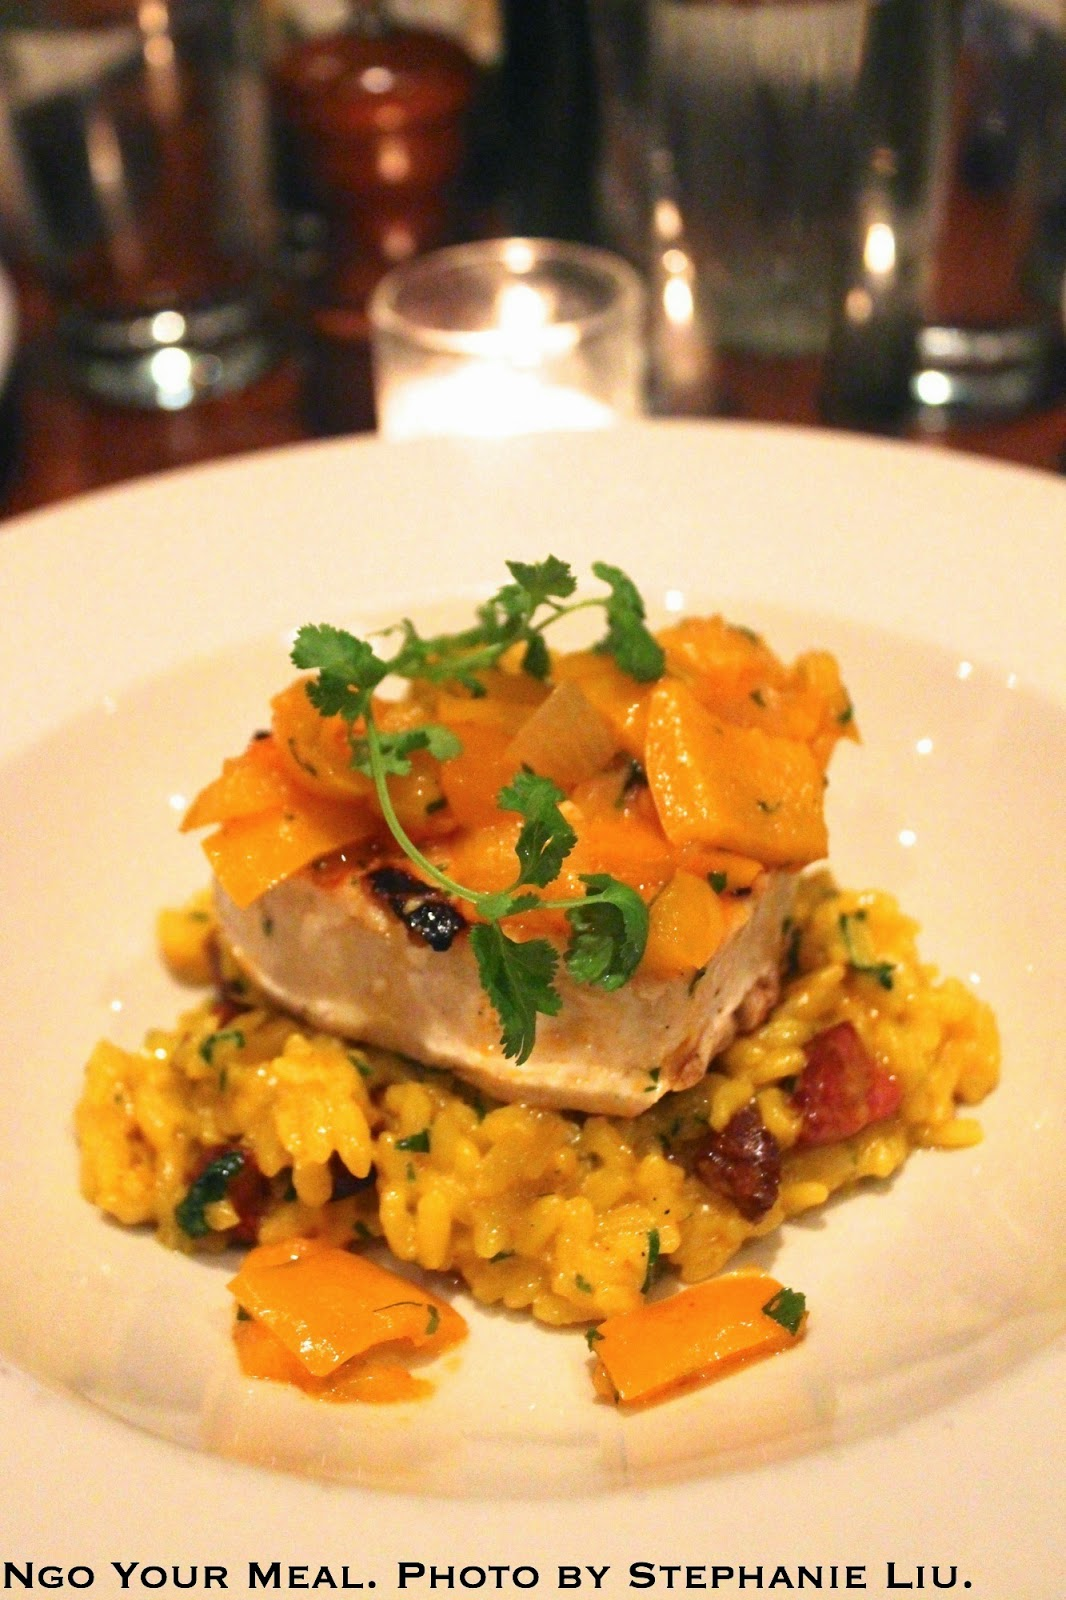 Grilled Swordfish with paella risotto, chorizo, and piperade at Jane